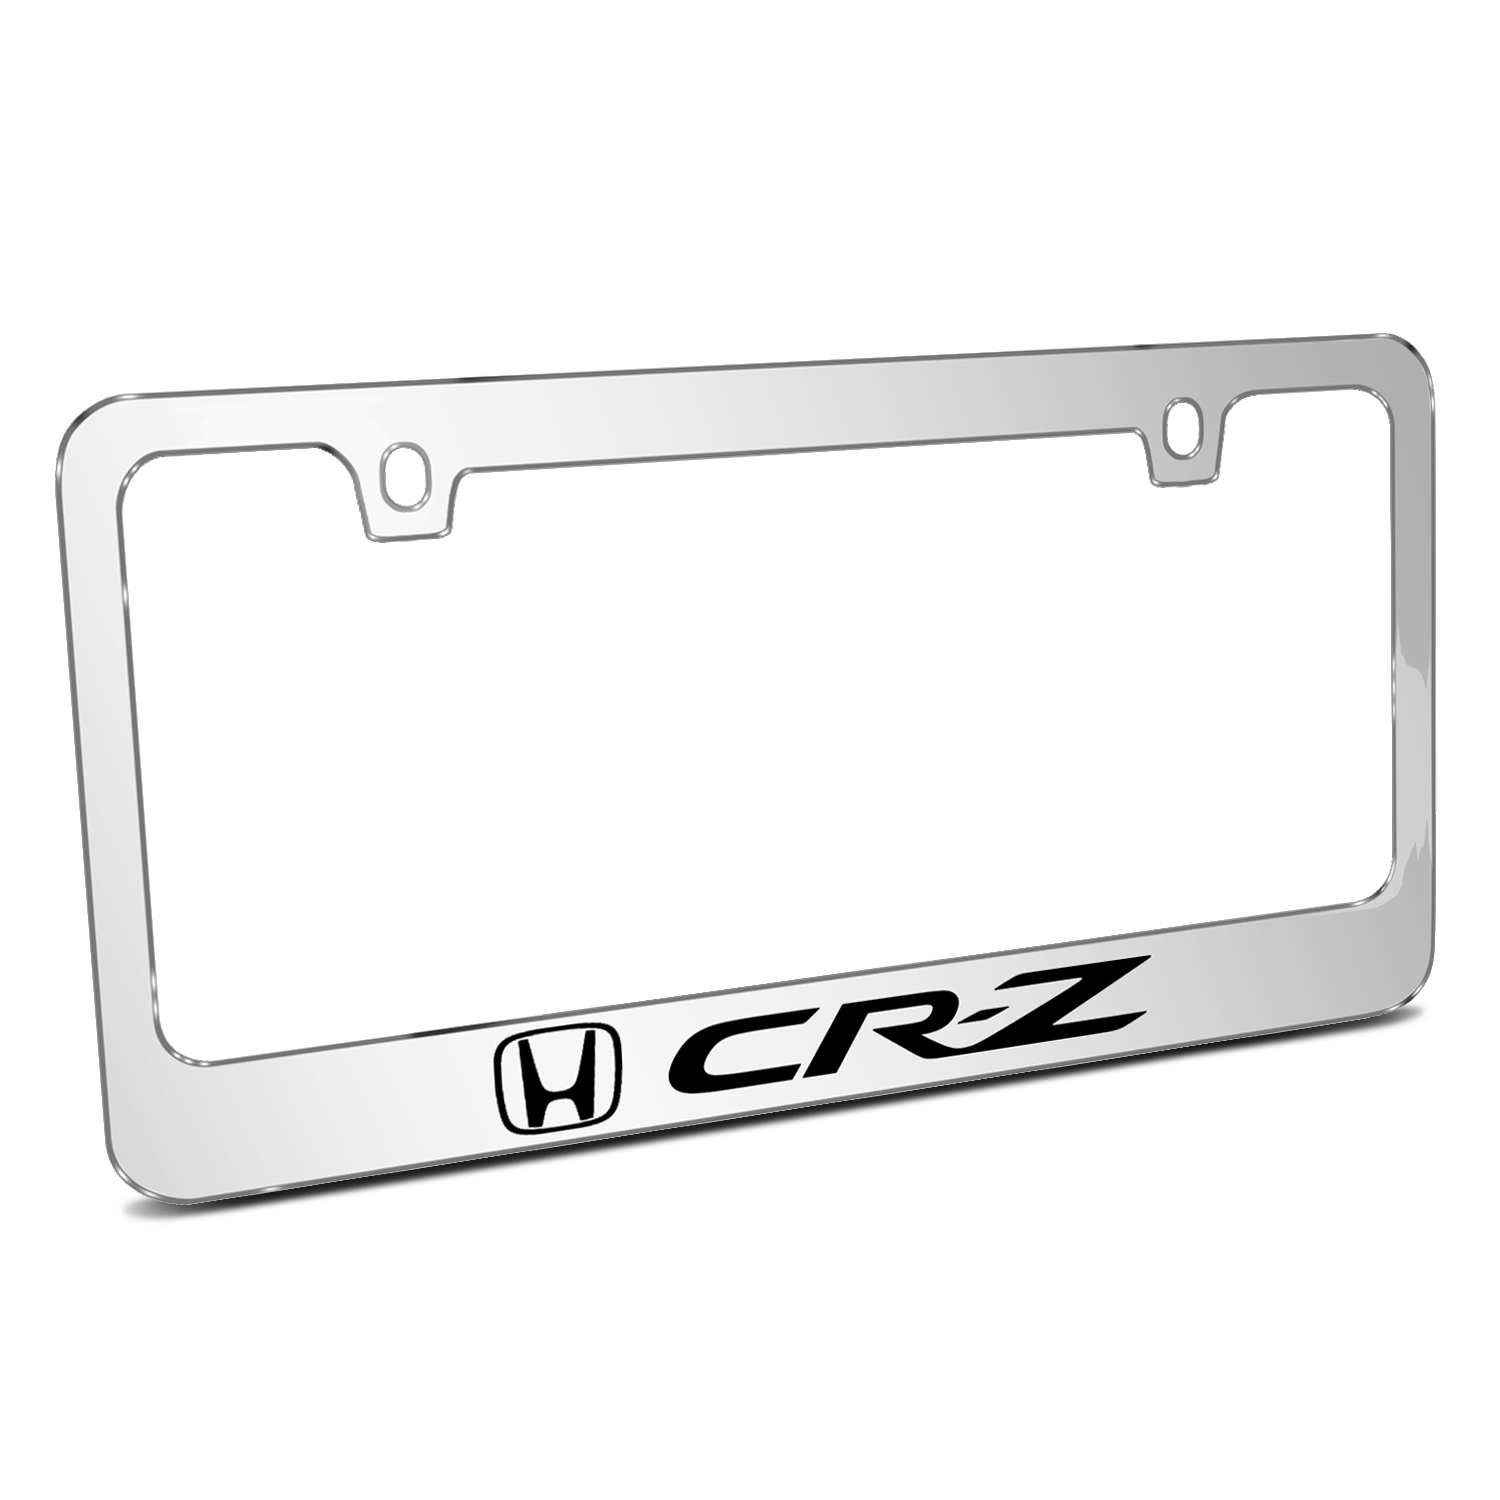 Honda CR-Z Mirror Chrome Metal License Plate Frame